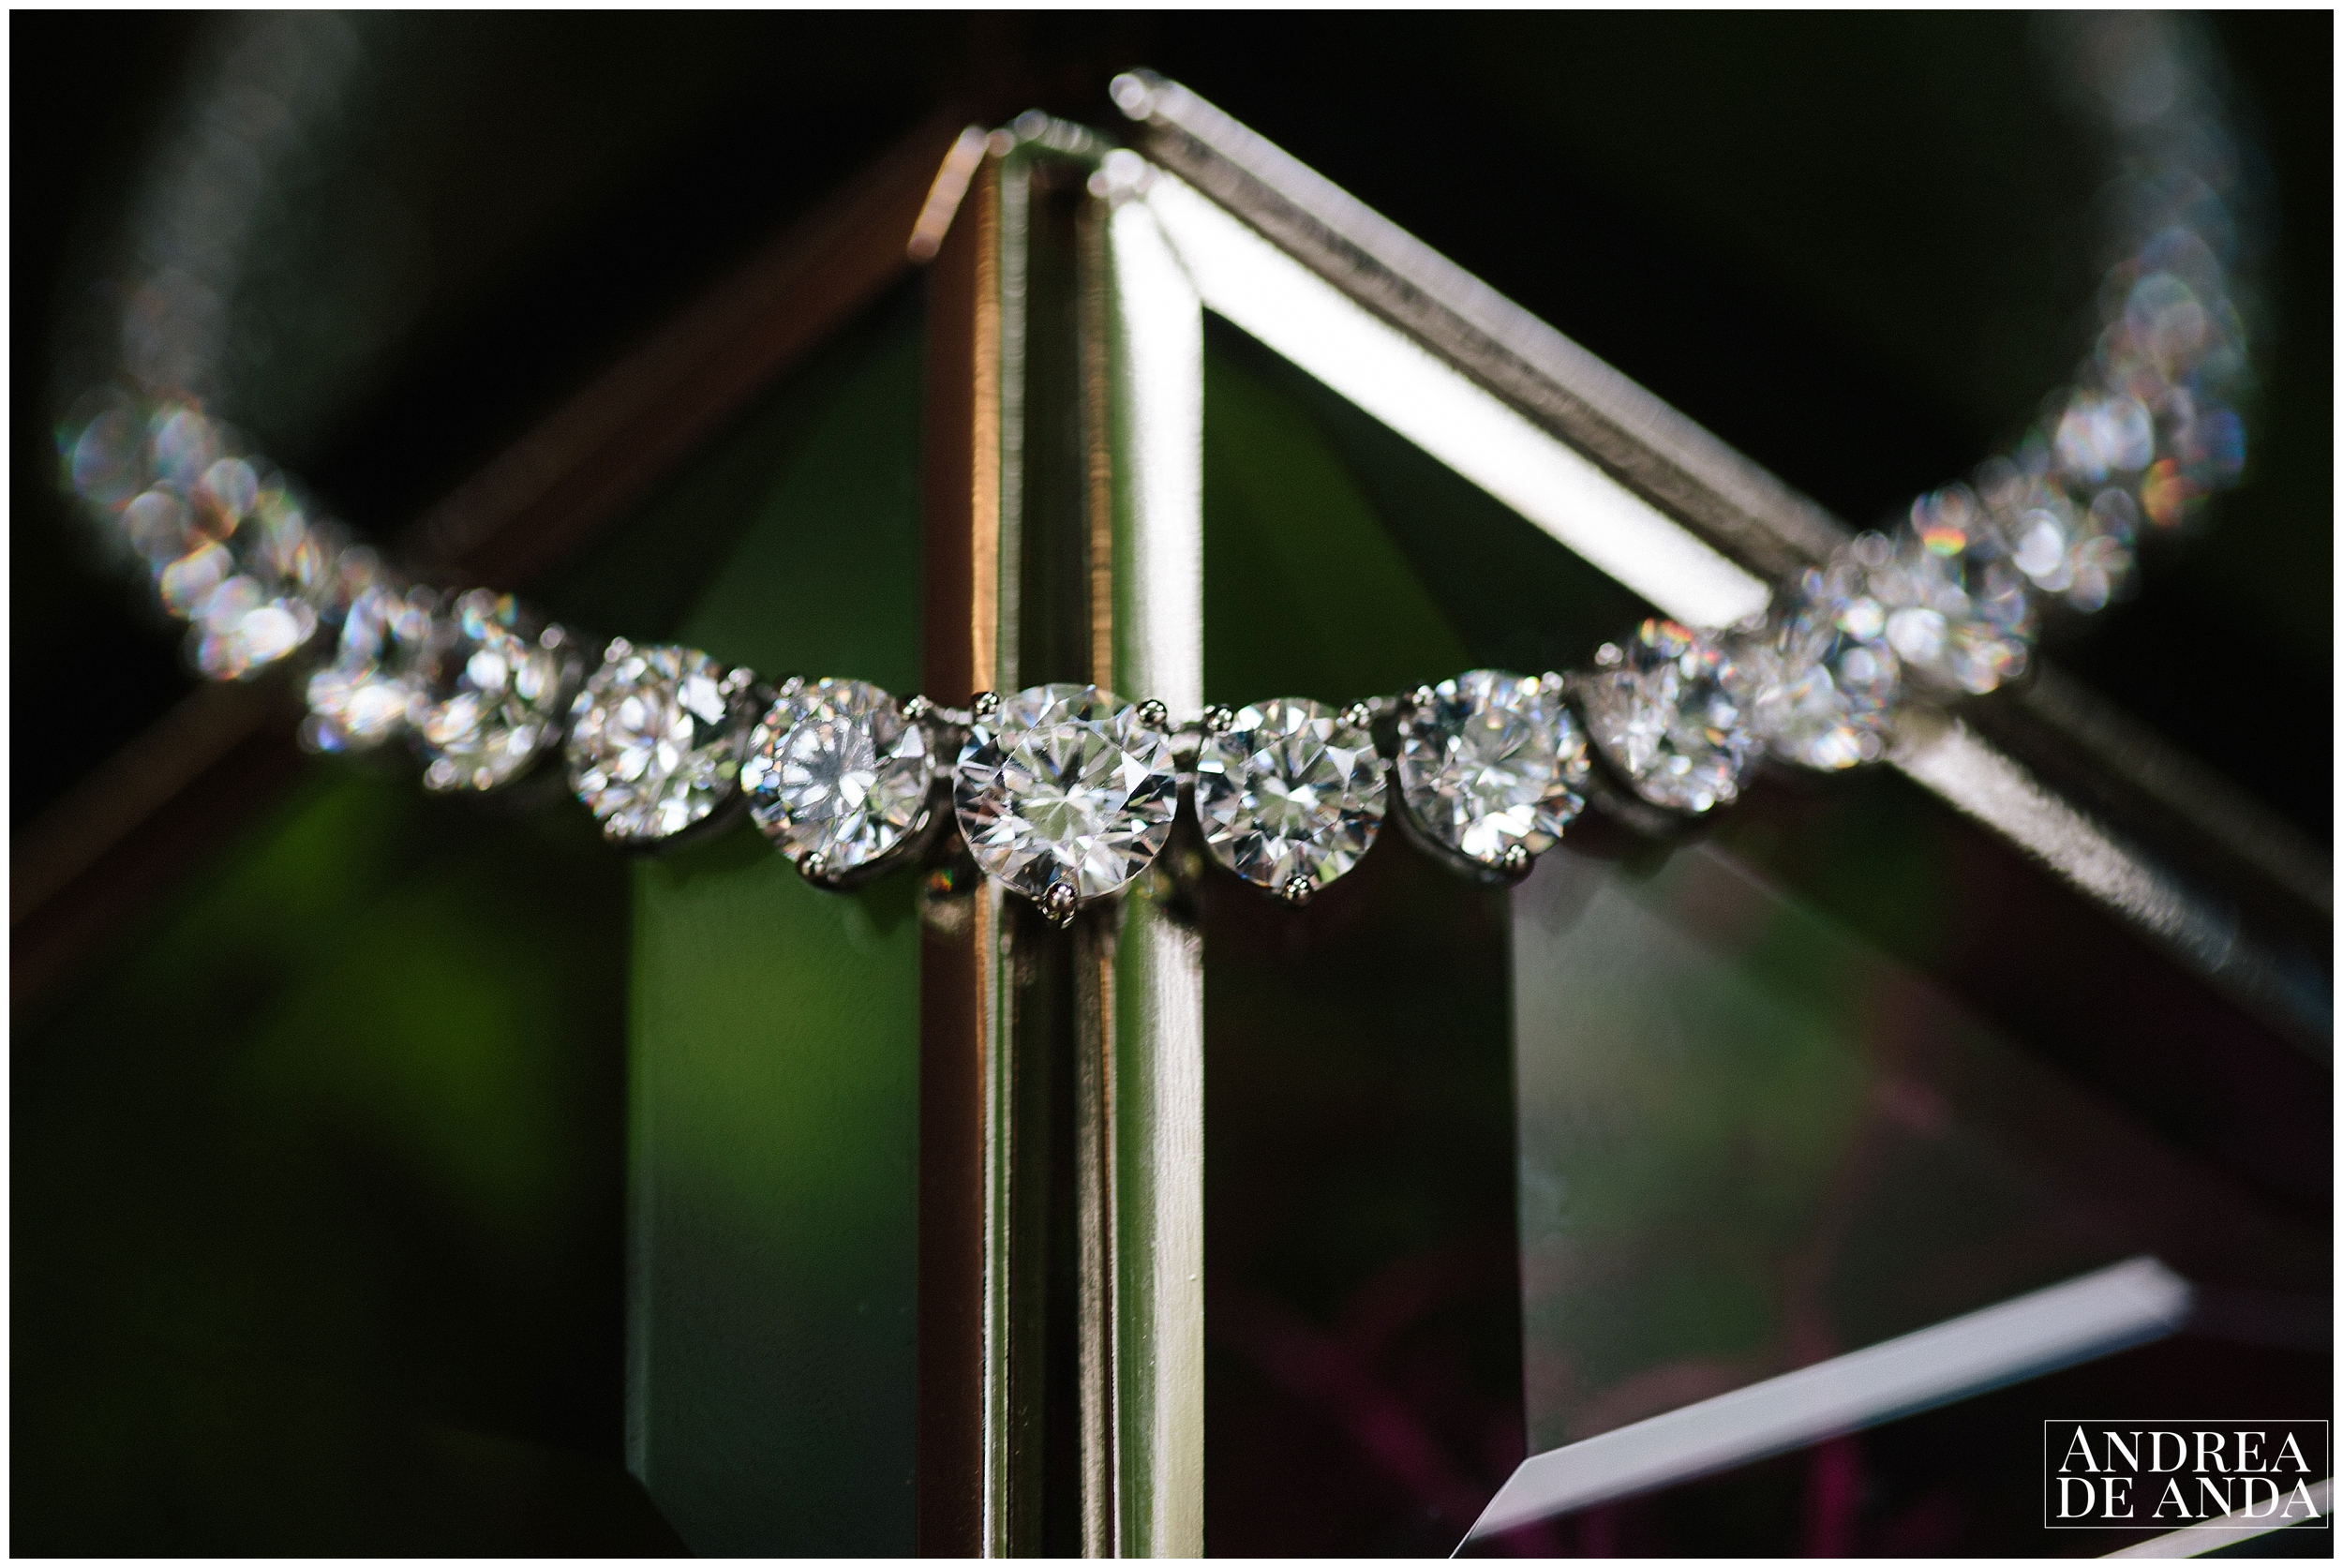 this diamond necklace is a moroccan tradition of gift from groom to bride